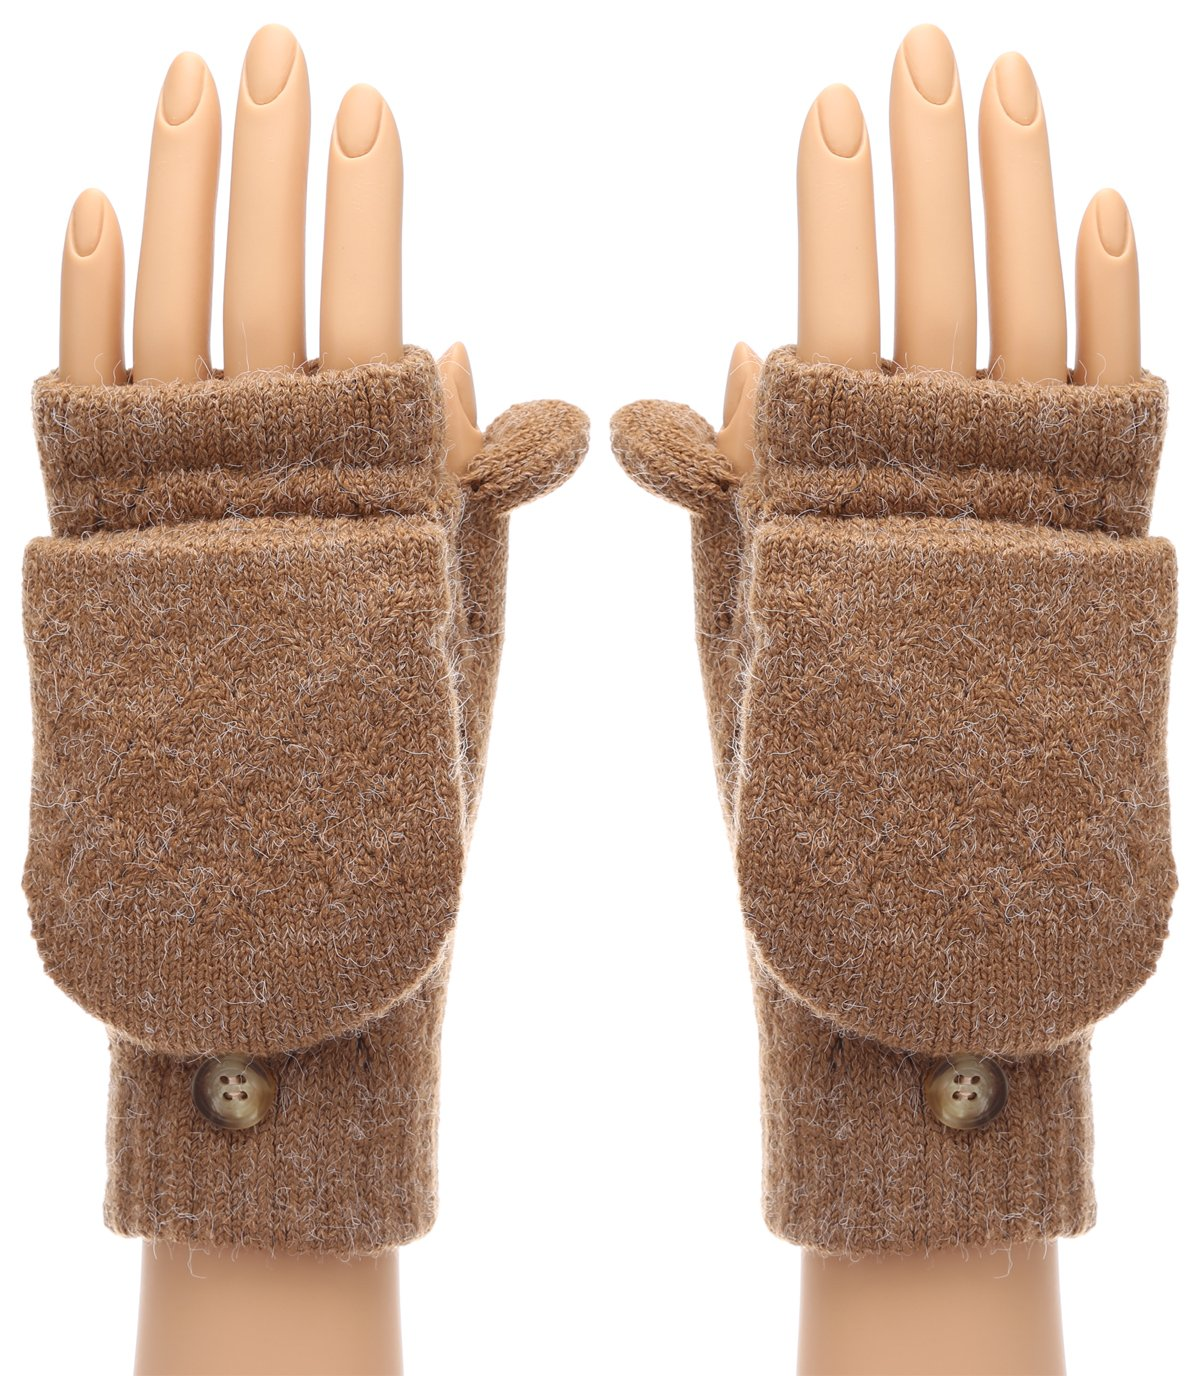 MIRMARU Women's Winter Knitted Fingerless Mitten Gloves with Flip Cover with Faux Fur Lining(602,Camel)